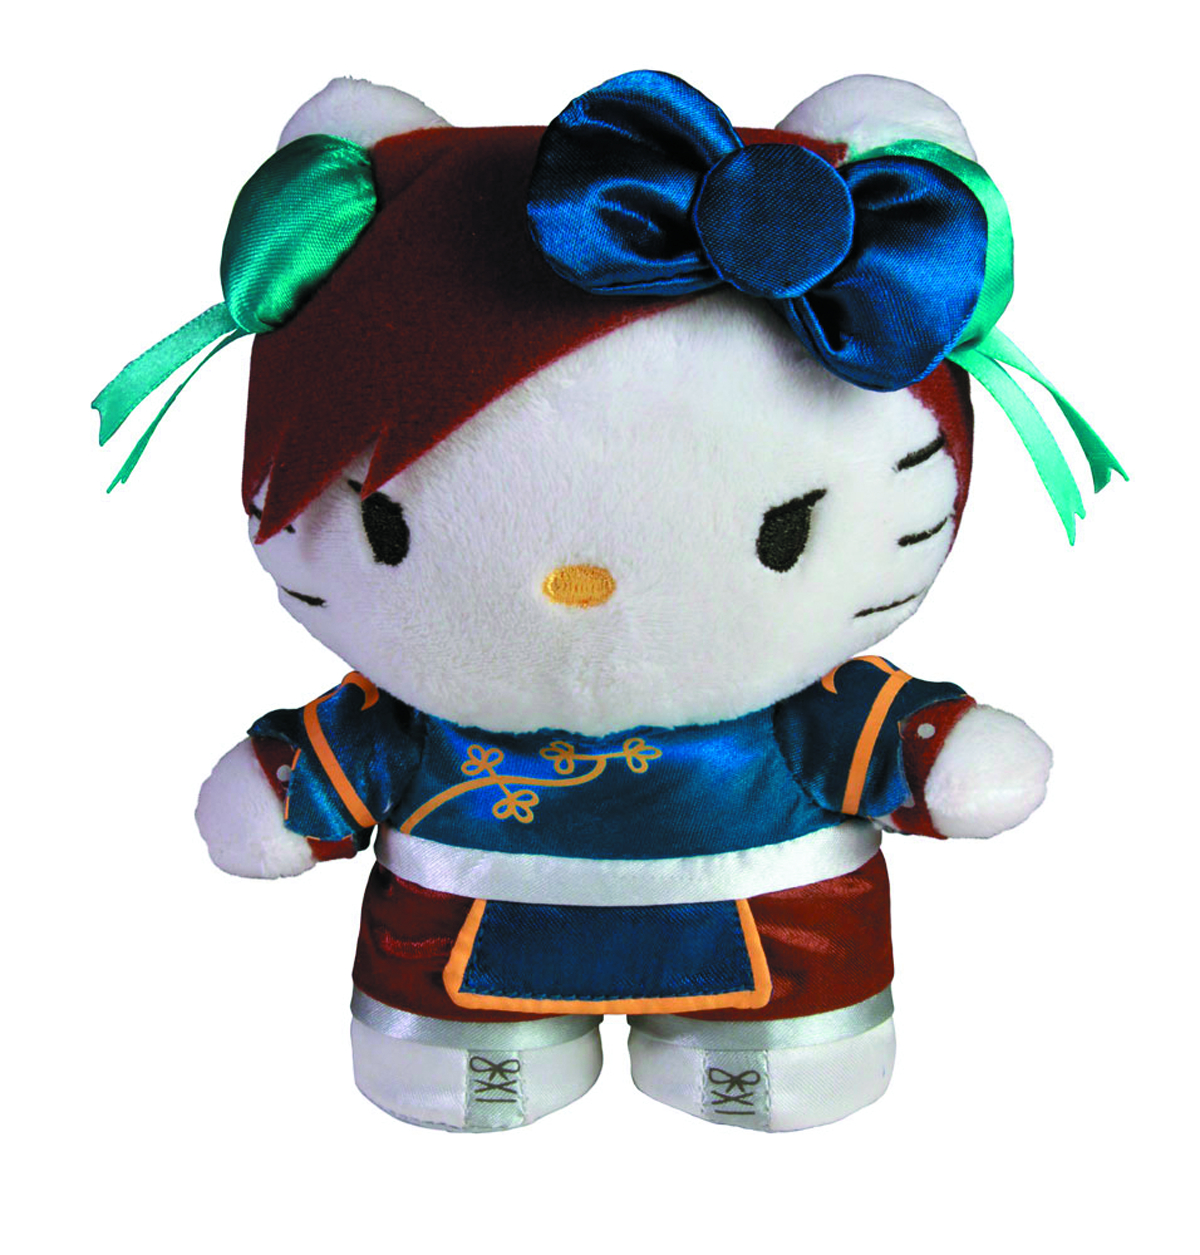 SANRIO X STREET FIGHTER CHUN LI 6-IN MINI PLUSH